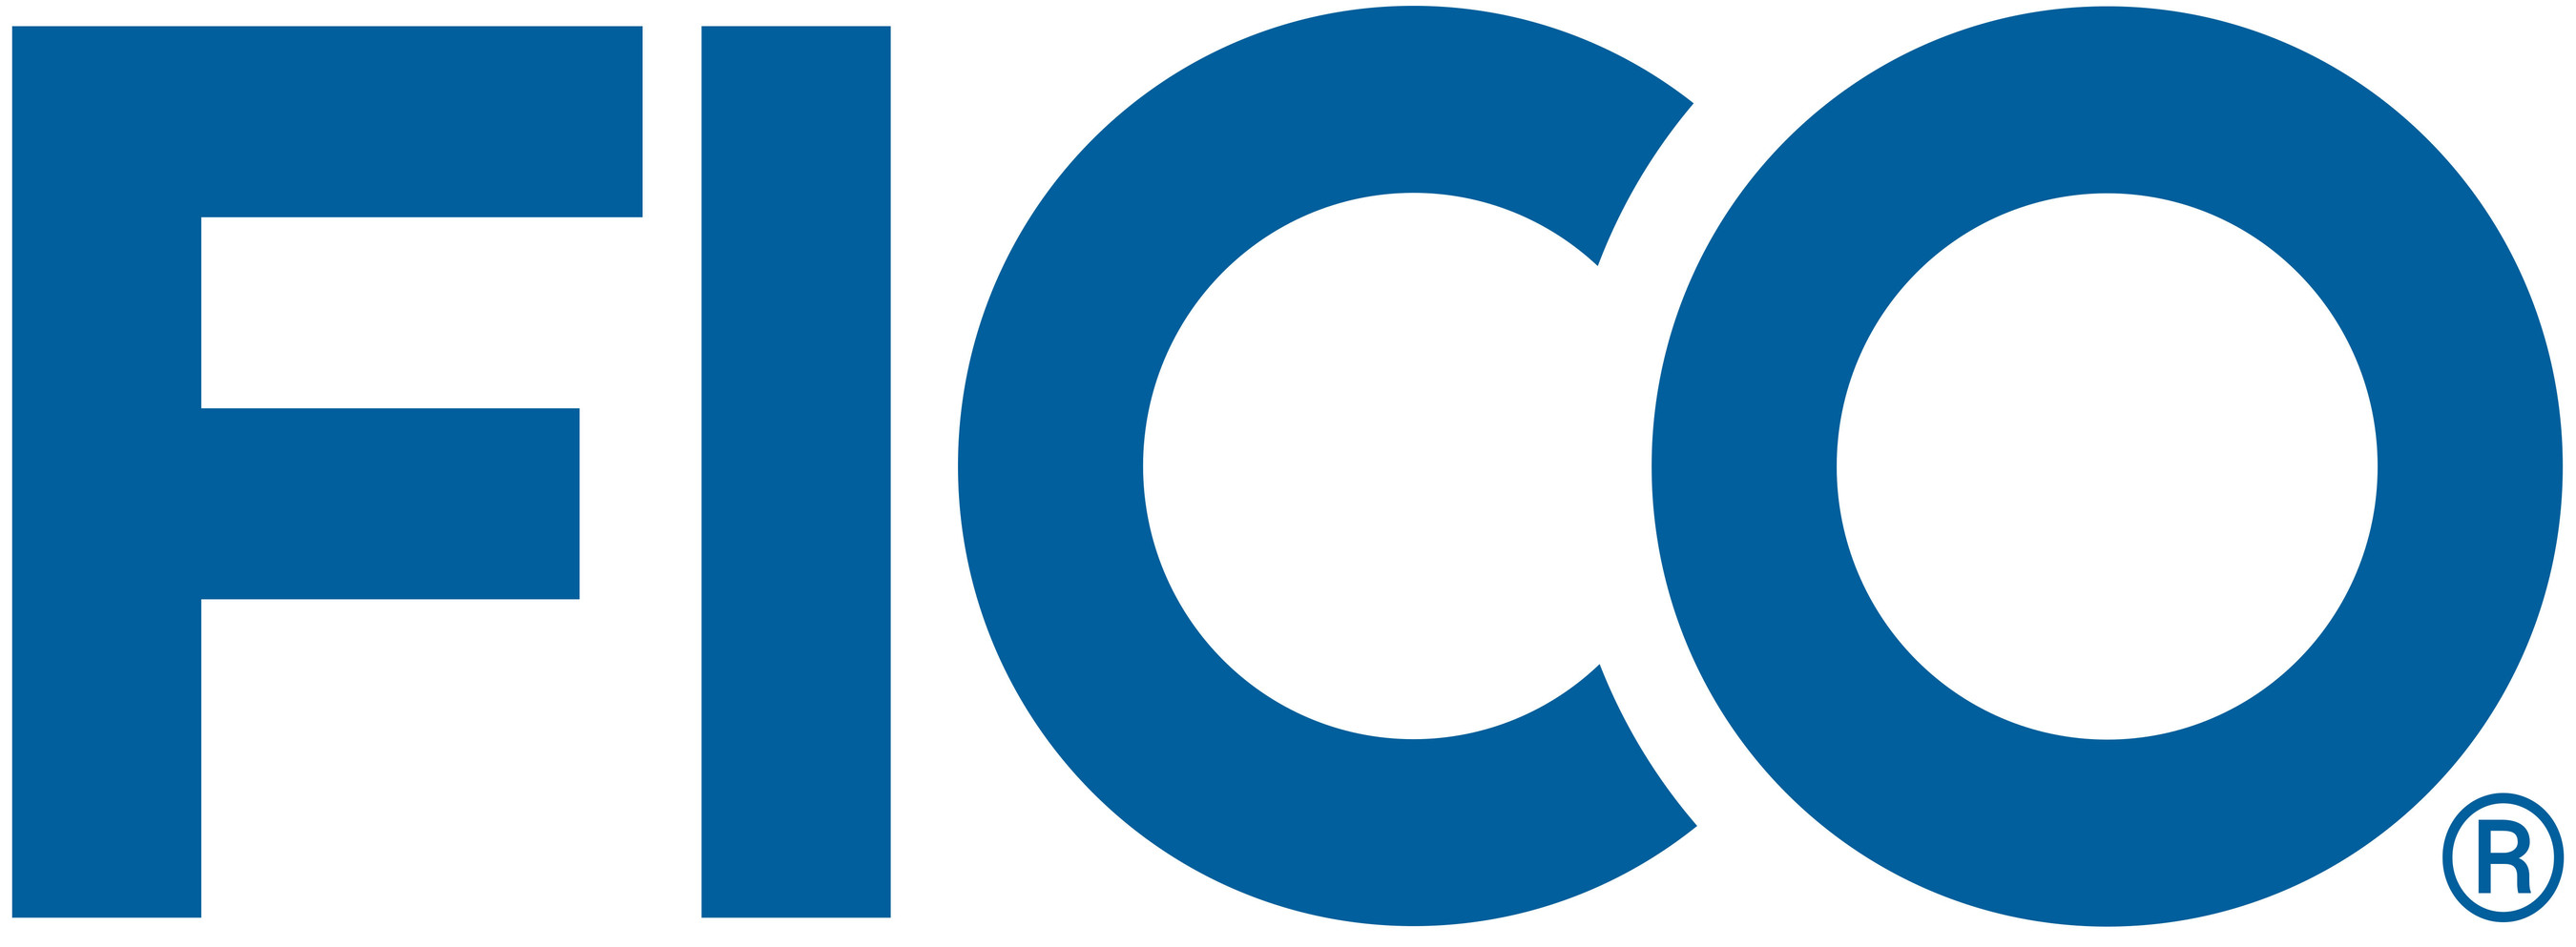 Call for Entries: FICO Decision Management Awards 2015